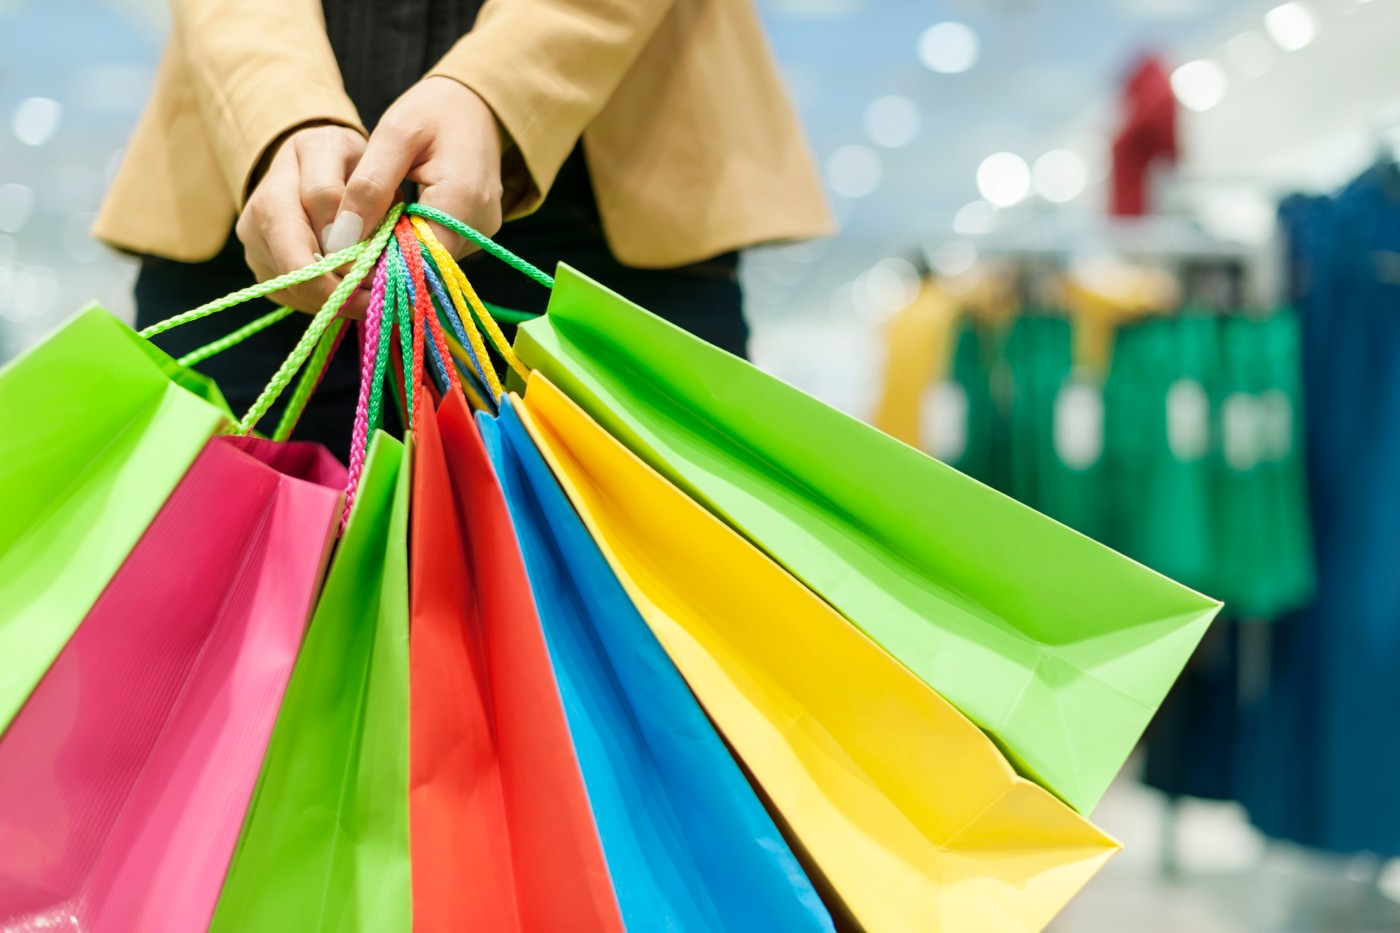 https://tickertapecdn.tdameritrade.com/assets/images/pages/md/Person with many shopping bags: CPI, GDP, and jobs report indicate strength of U.S. economy